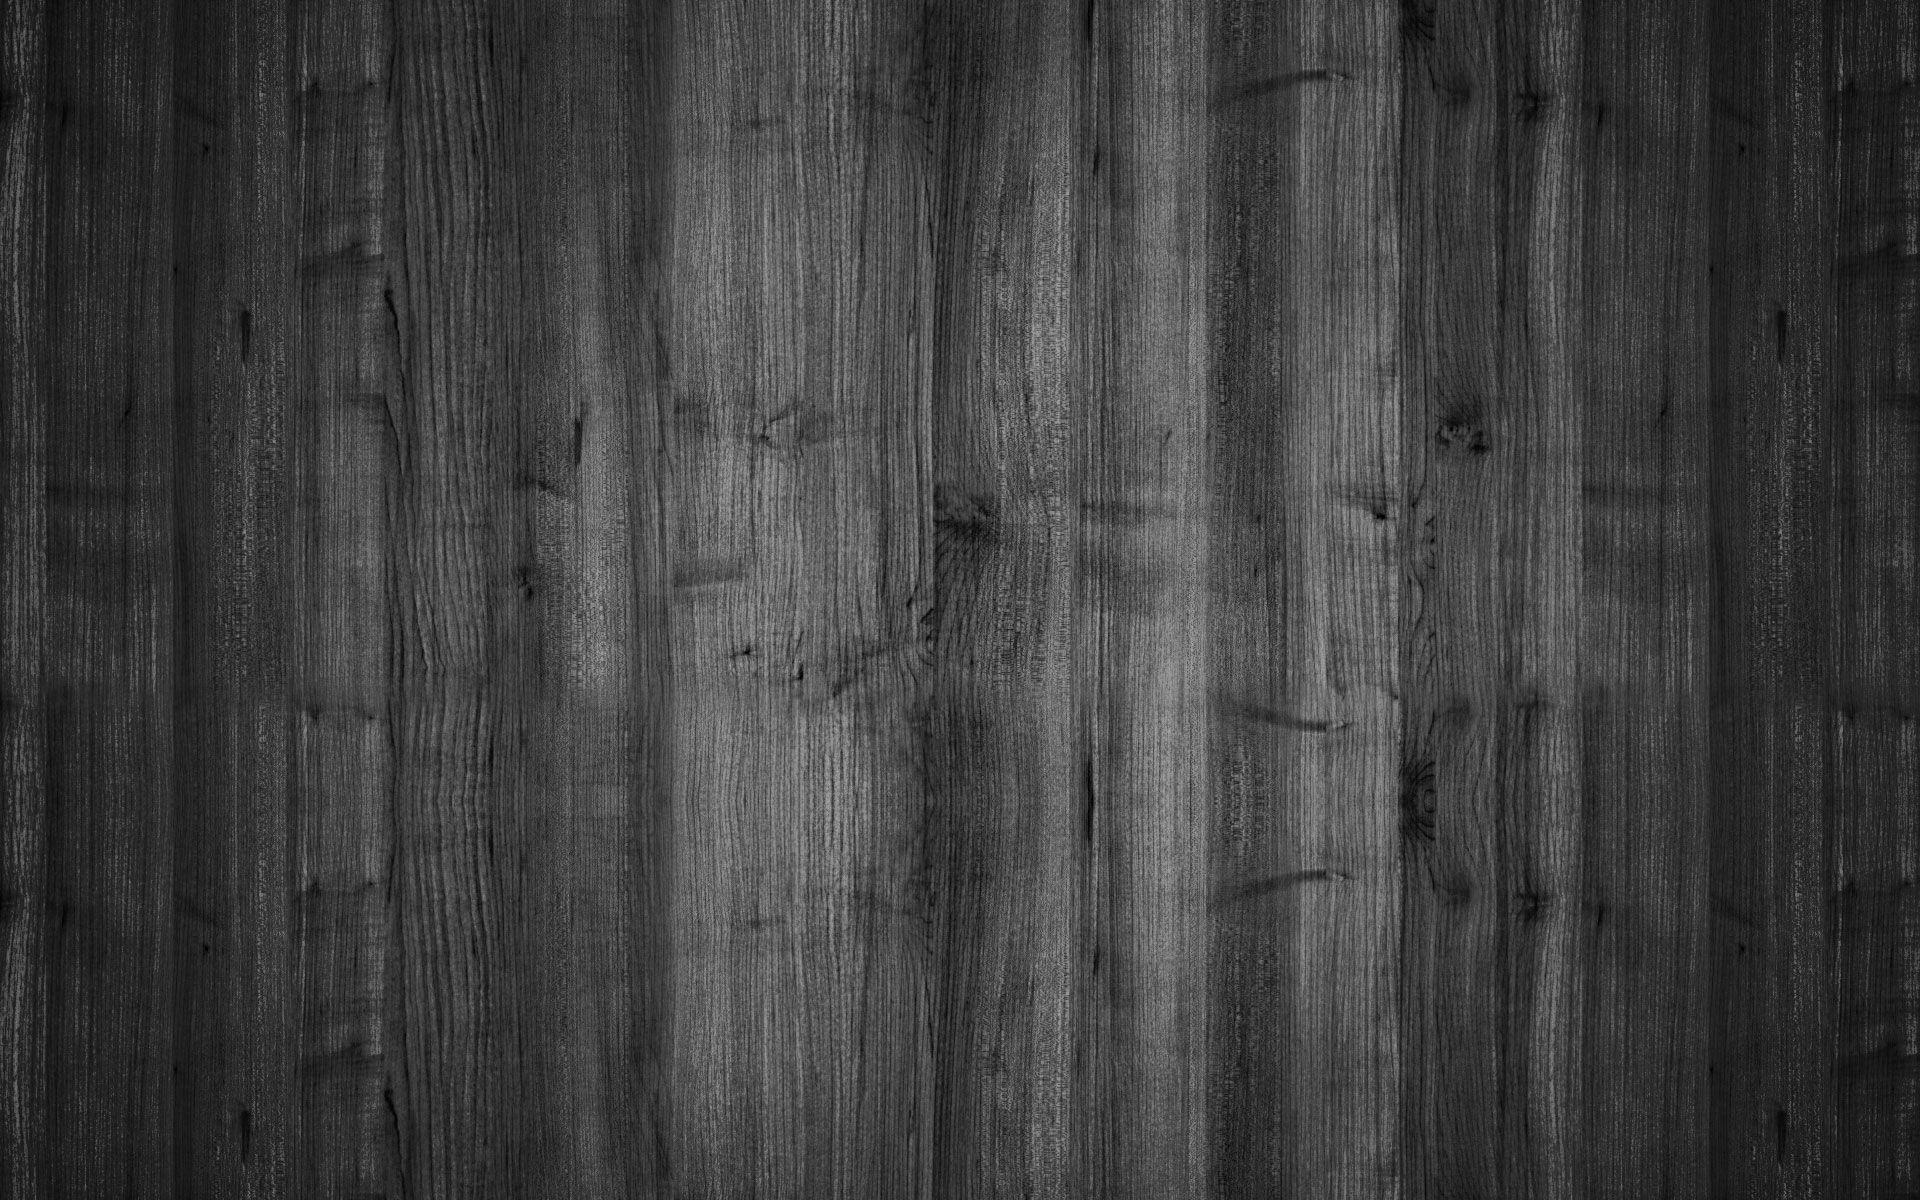 Image For > White Wood Grain Wallpapers